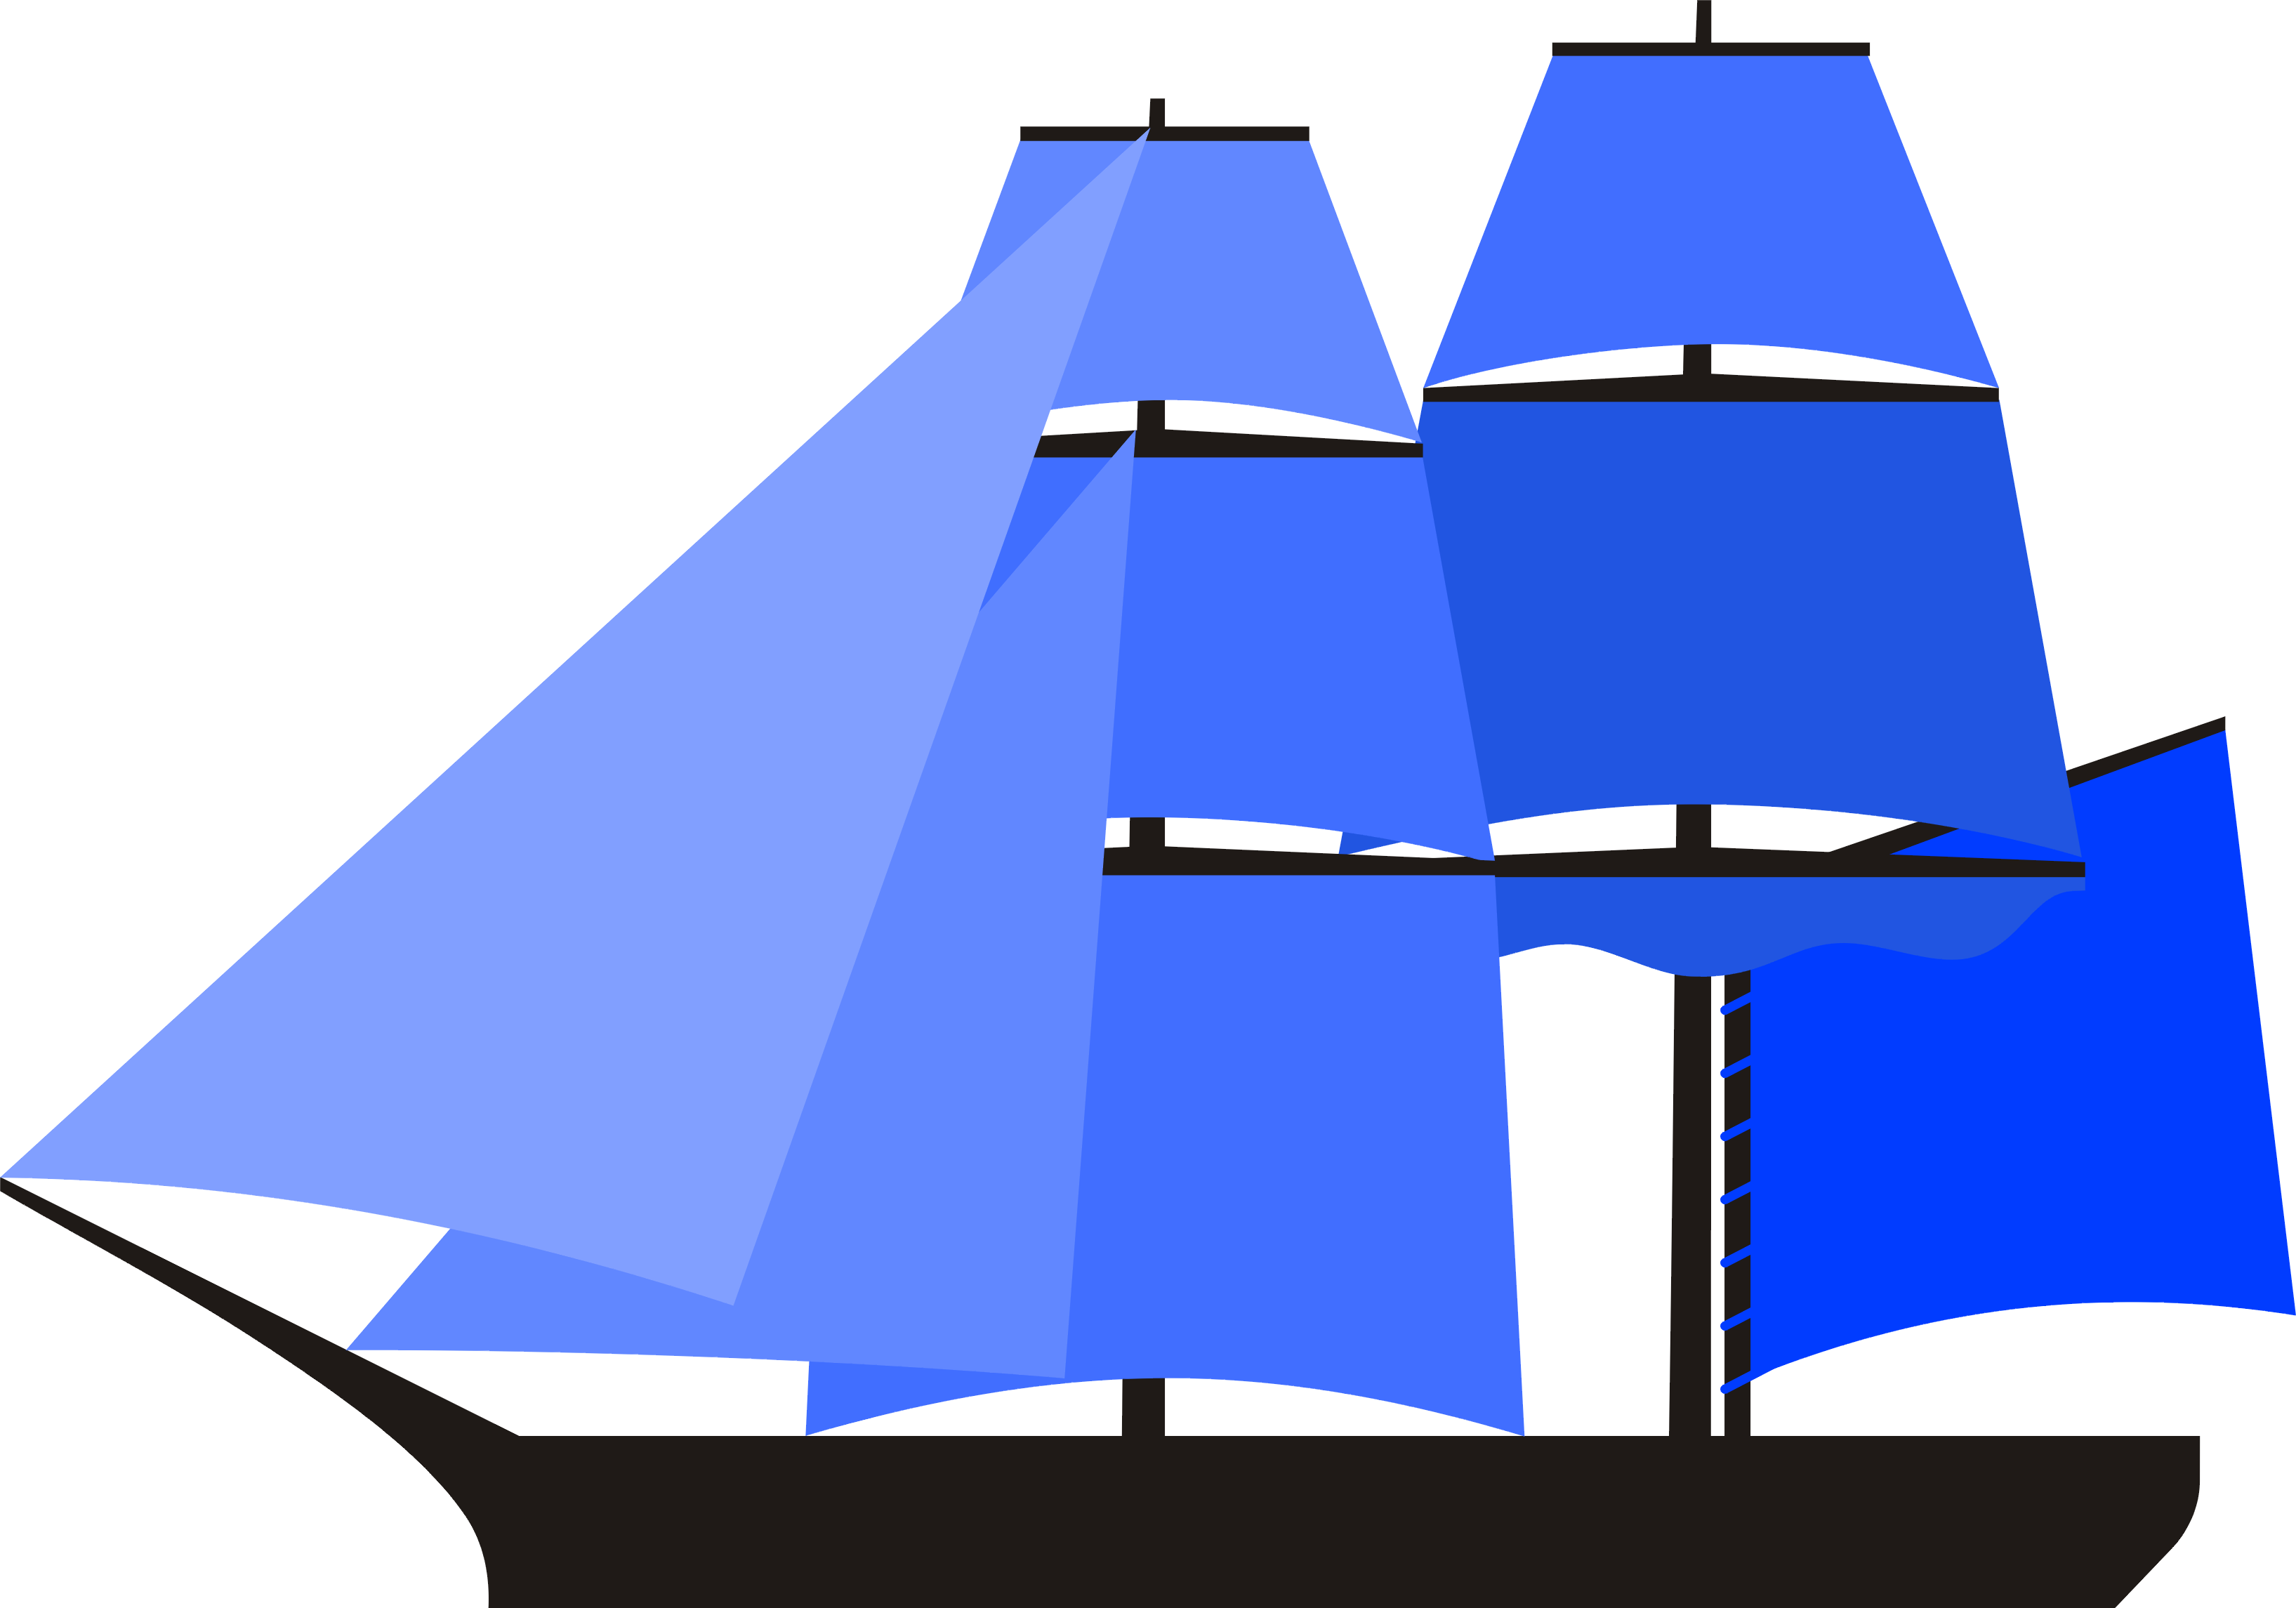 15th century trade ship clipart clipart images gallery for.